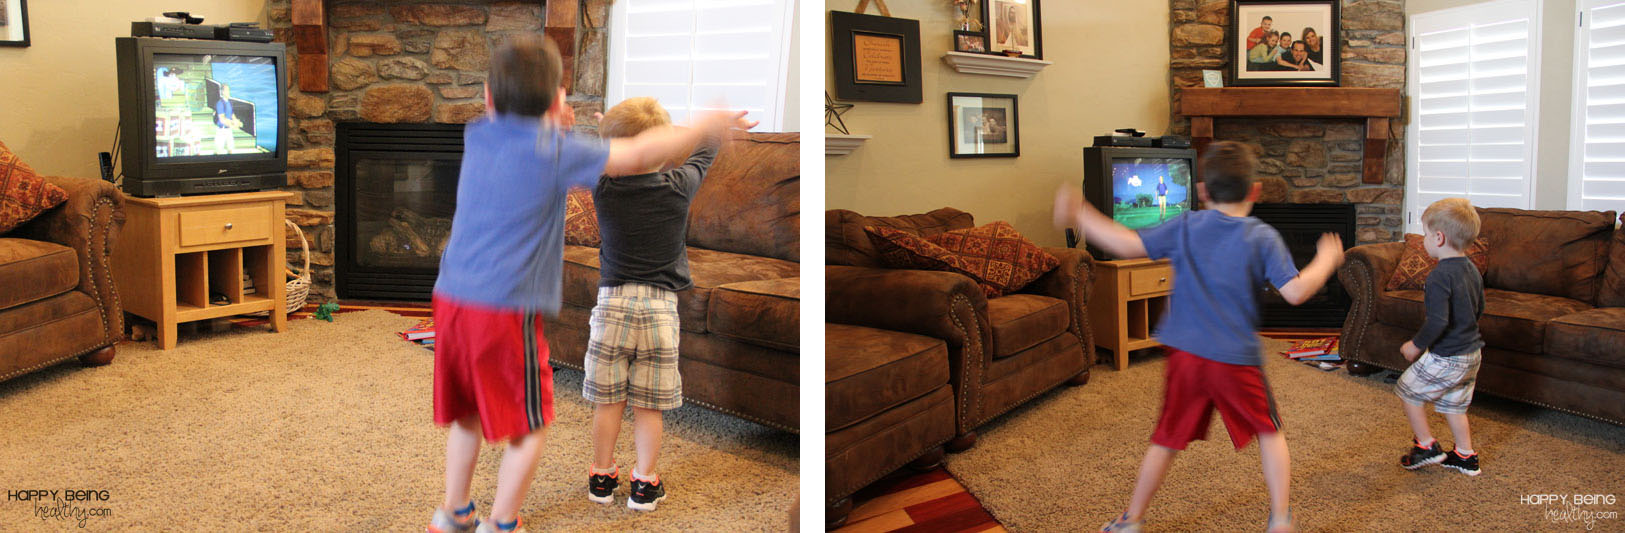 Kids-doing-Adventure-to-Fitness-back_13155